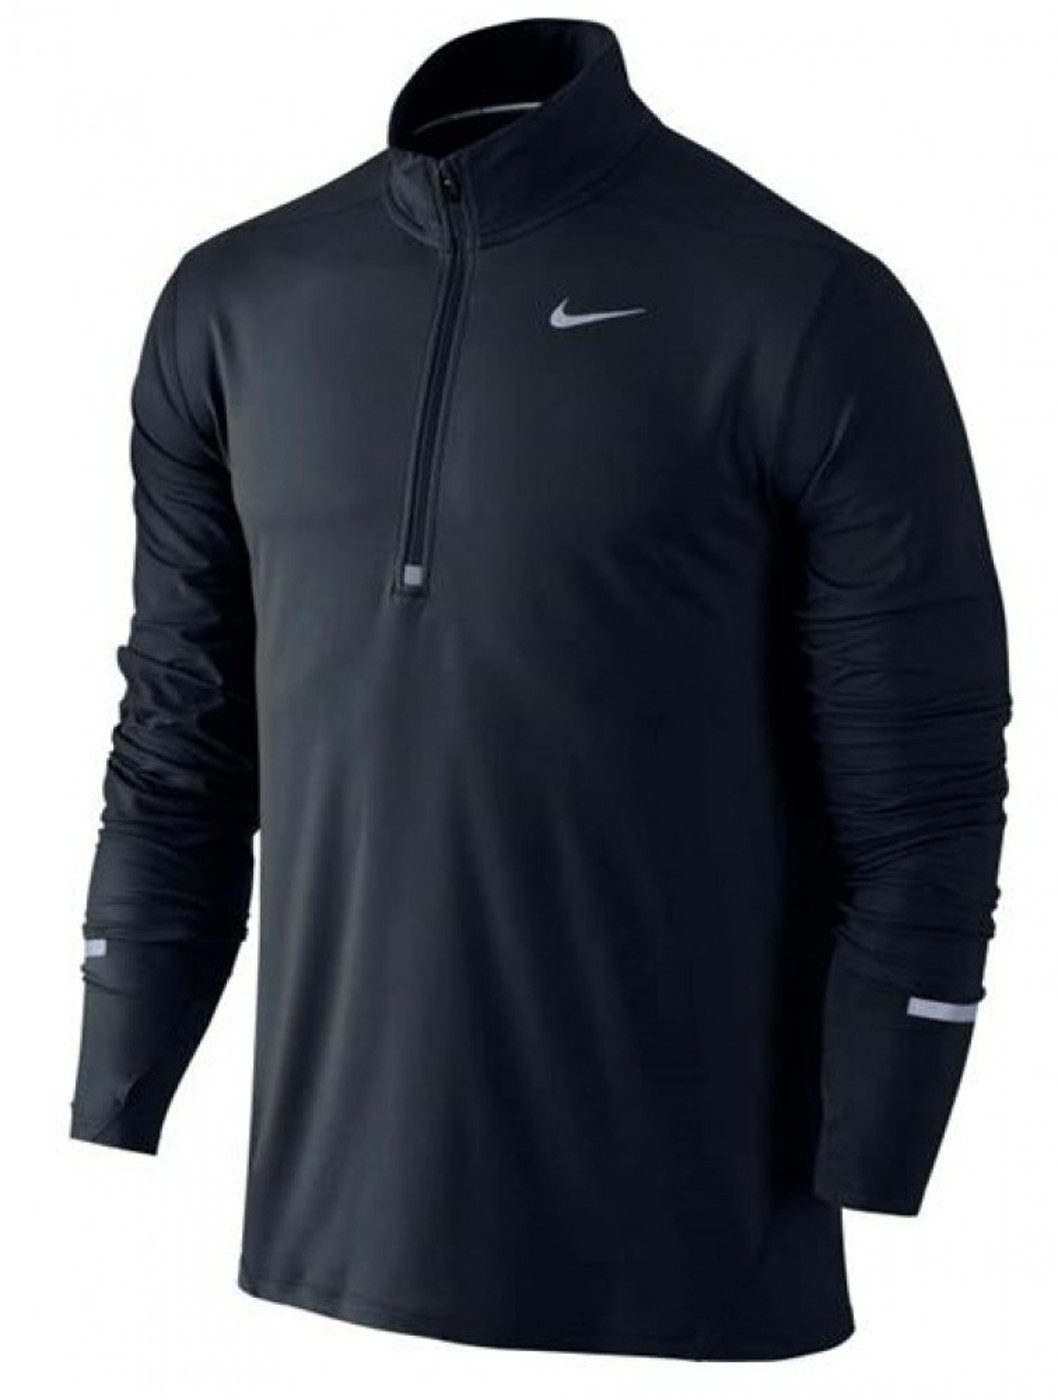 NIKE Shirt ELEMENT ZIP - Herren